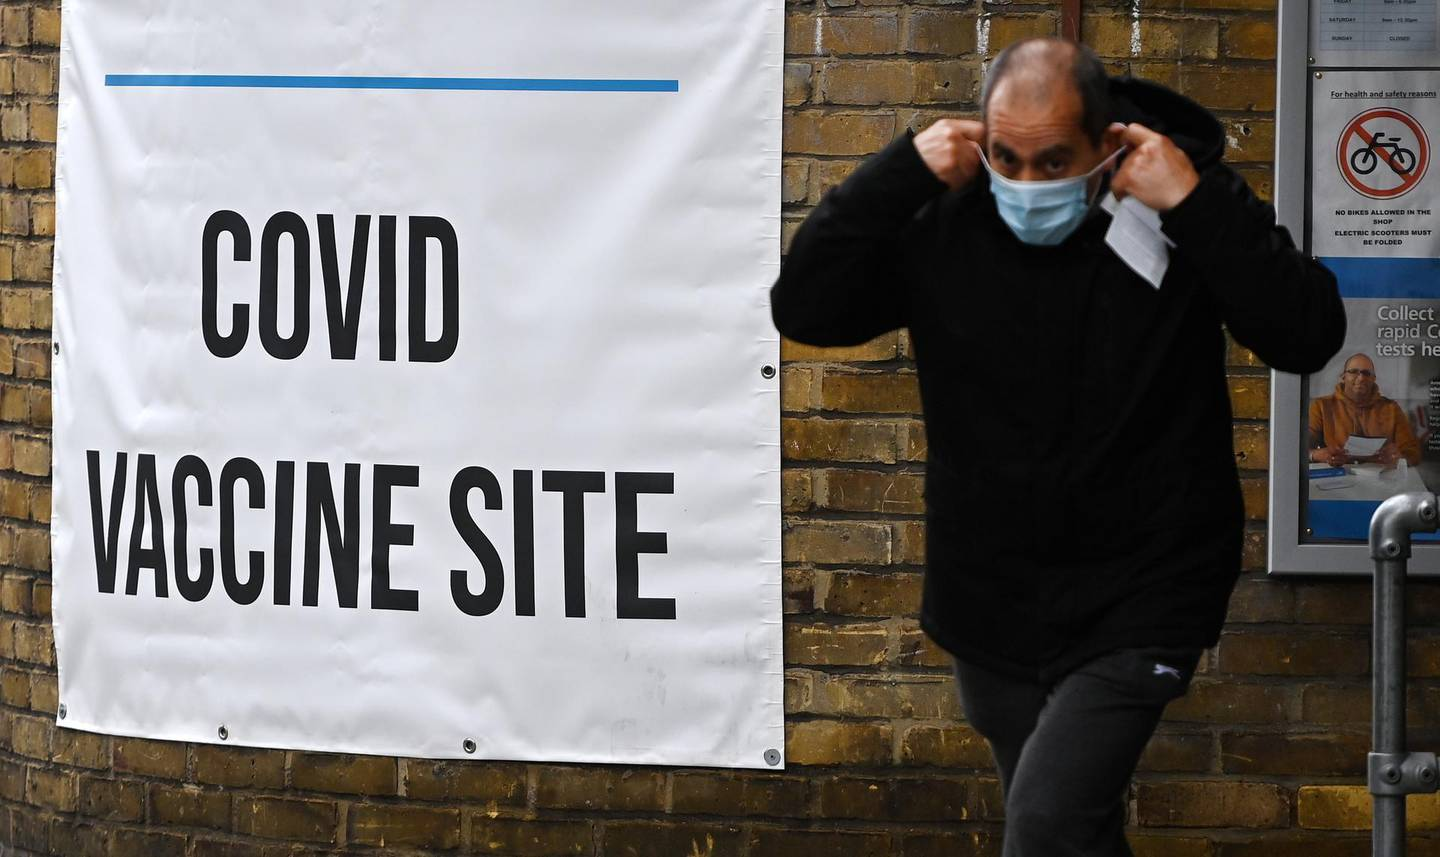 epa09226468 A man exits a Covid vaccine centre in central London, Britain, 25 May 2021. The government is coming under pressure to answer questions over its apparent failure to notify local health chiefs of crucial Covid-19 travel advice.  EPA/ANDY RAIN